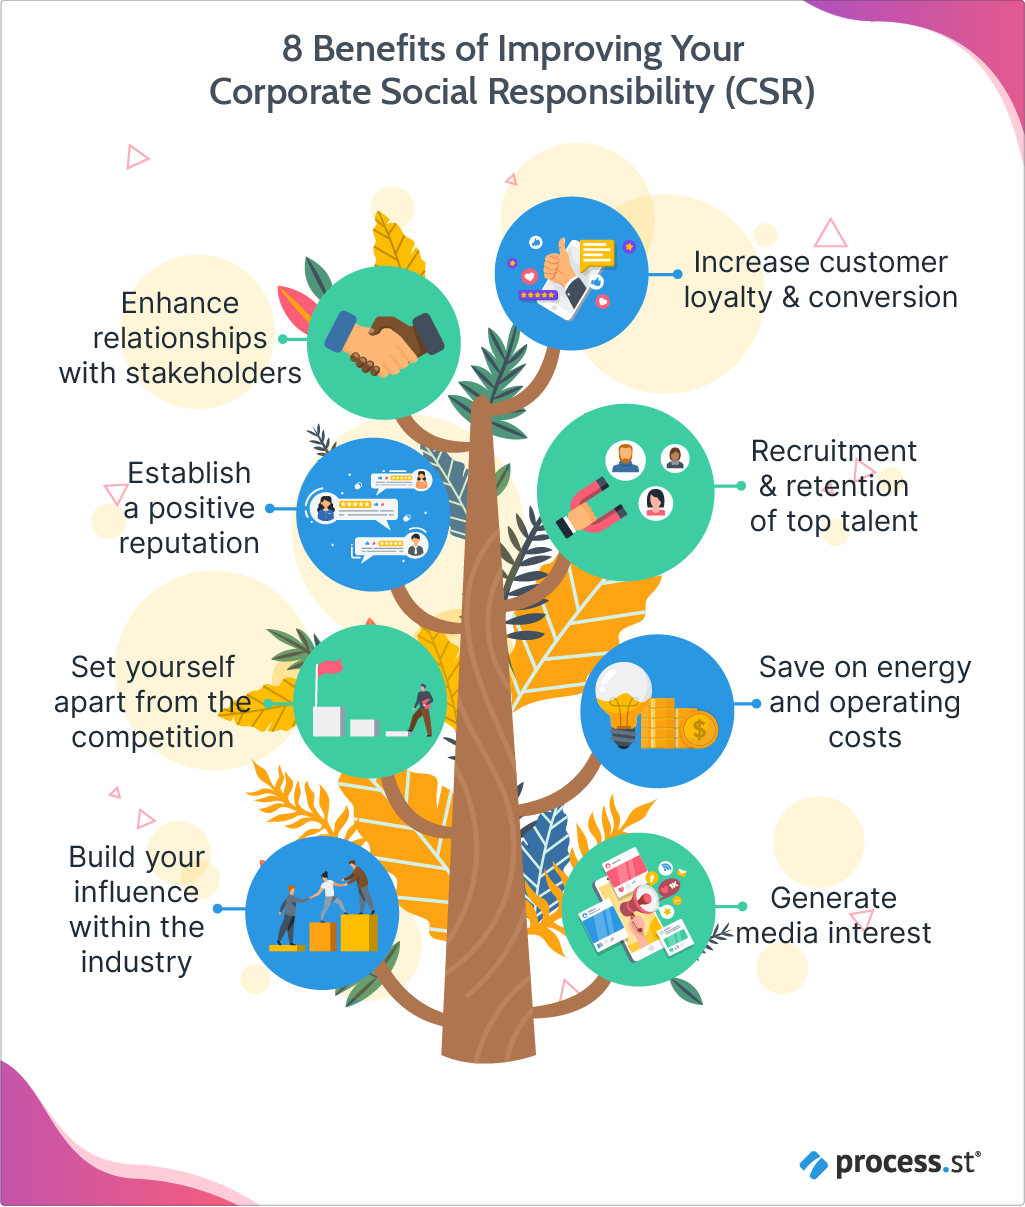 8 Benefits of Improving Your Corporate Social Responsibility